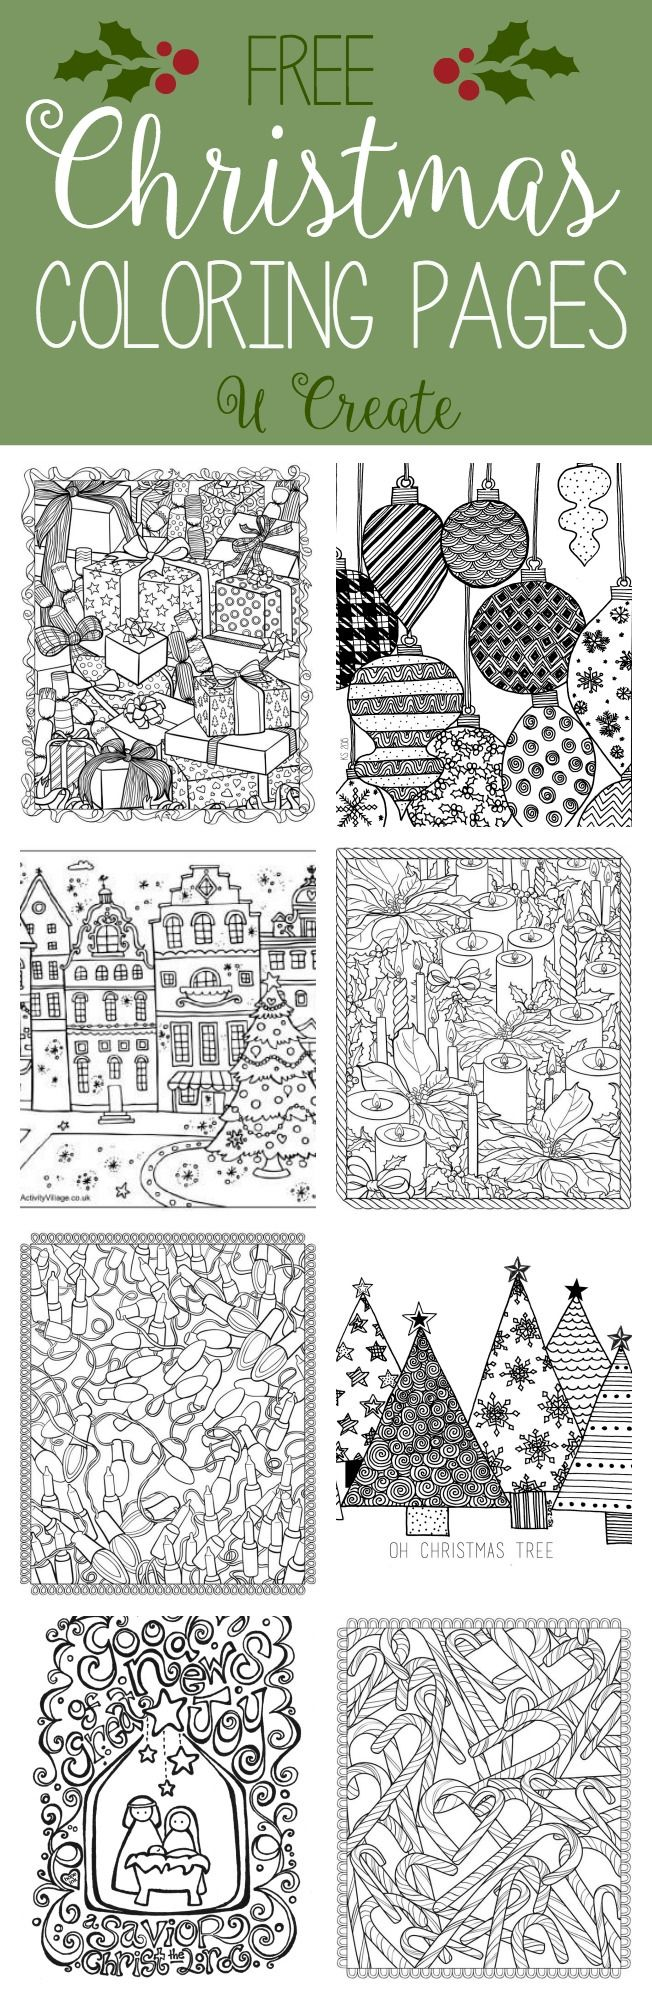 outlet orlando international drive Free Christmas Adult Coloring Pages  Fun holiday activity